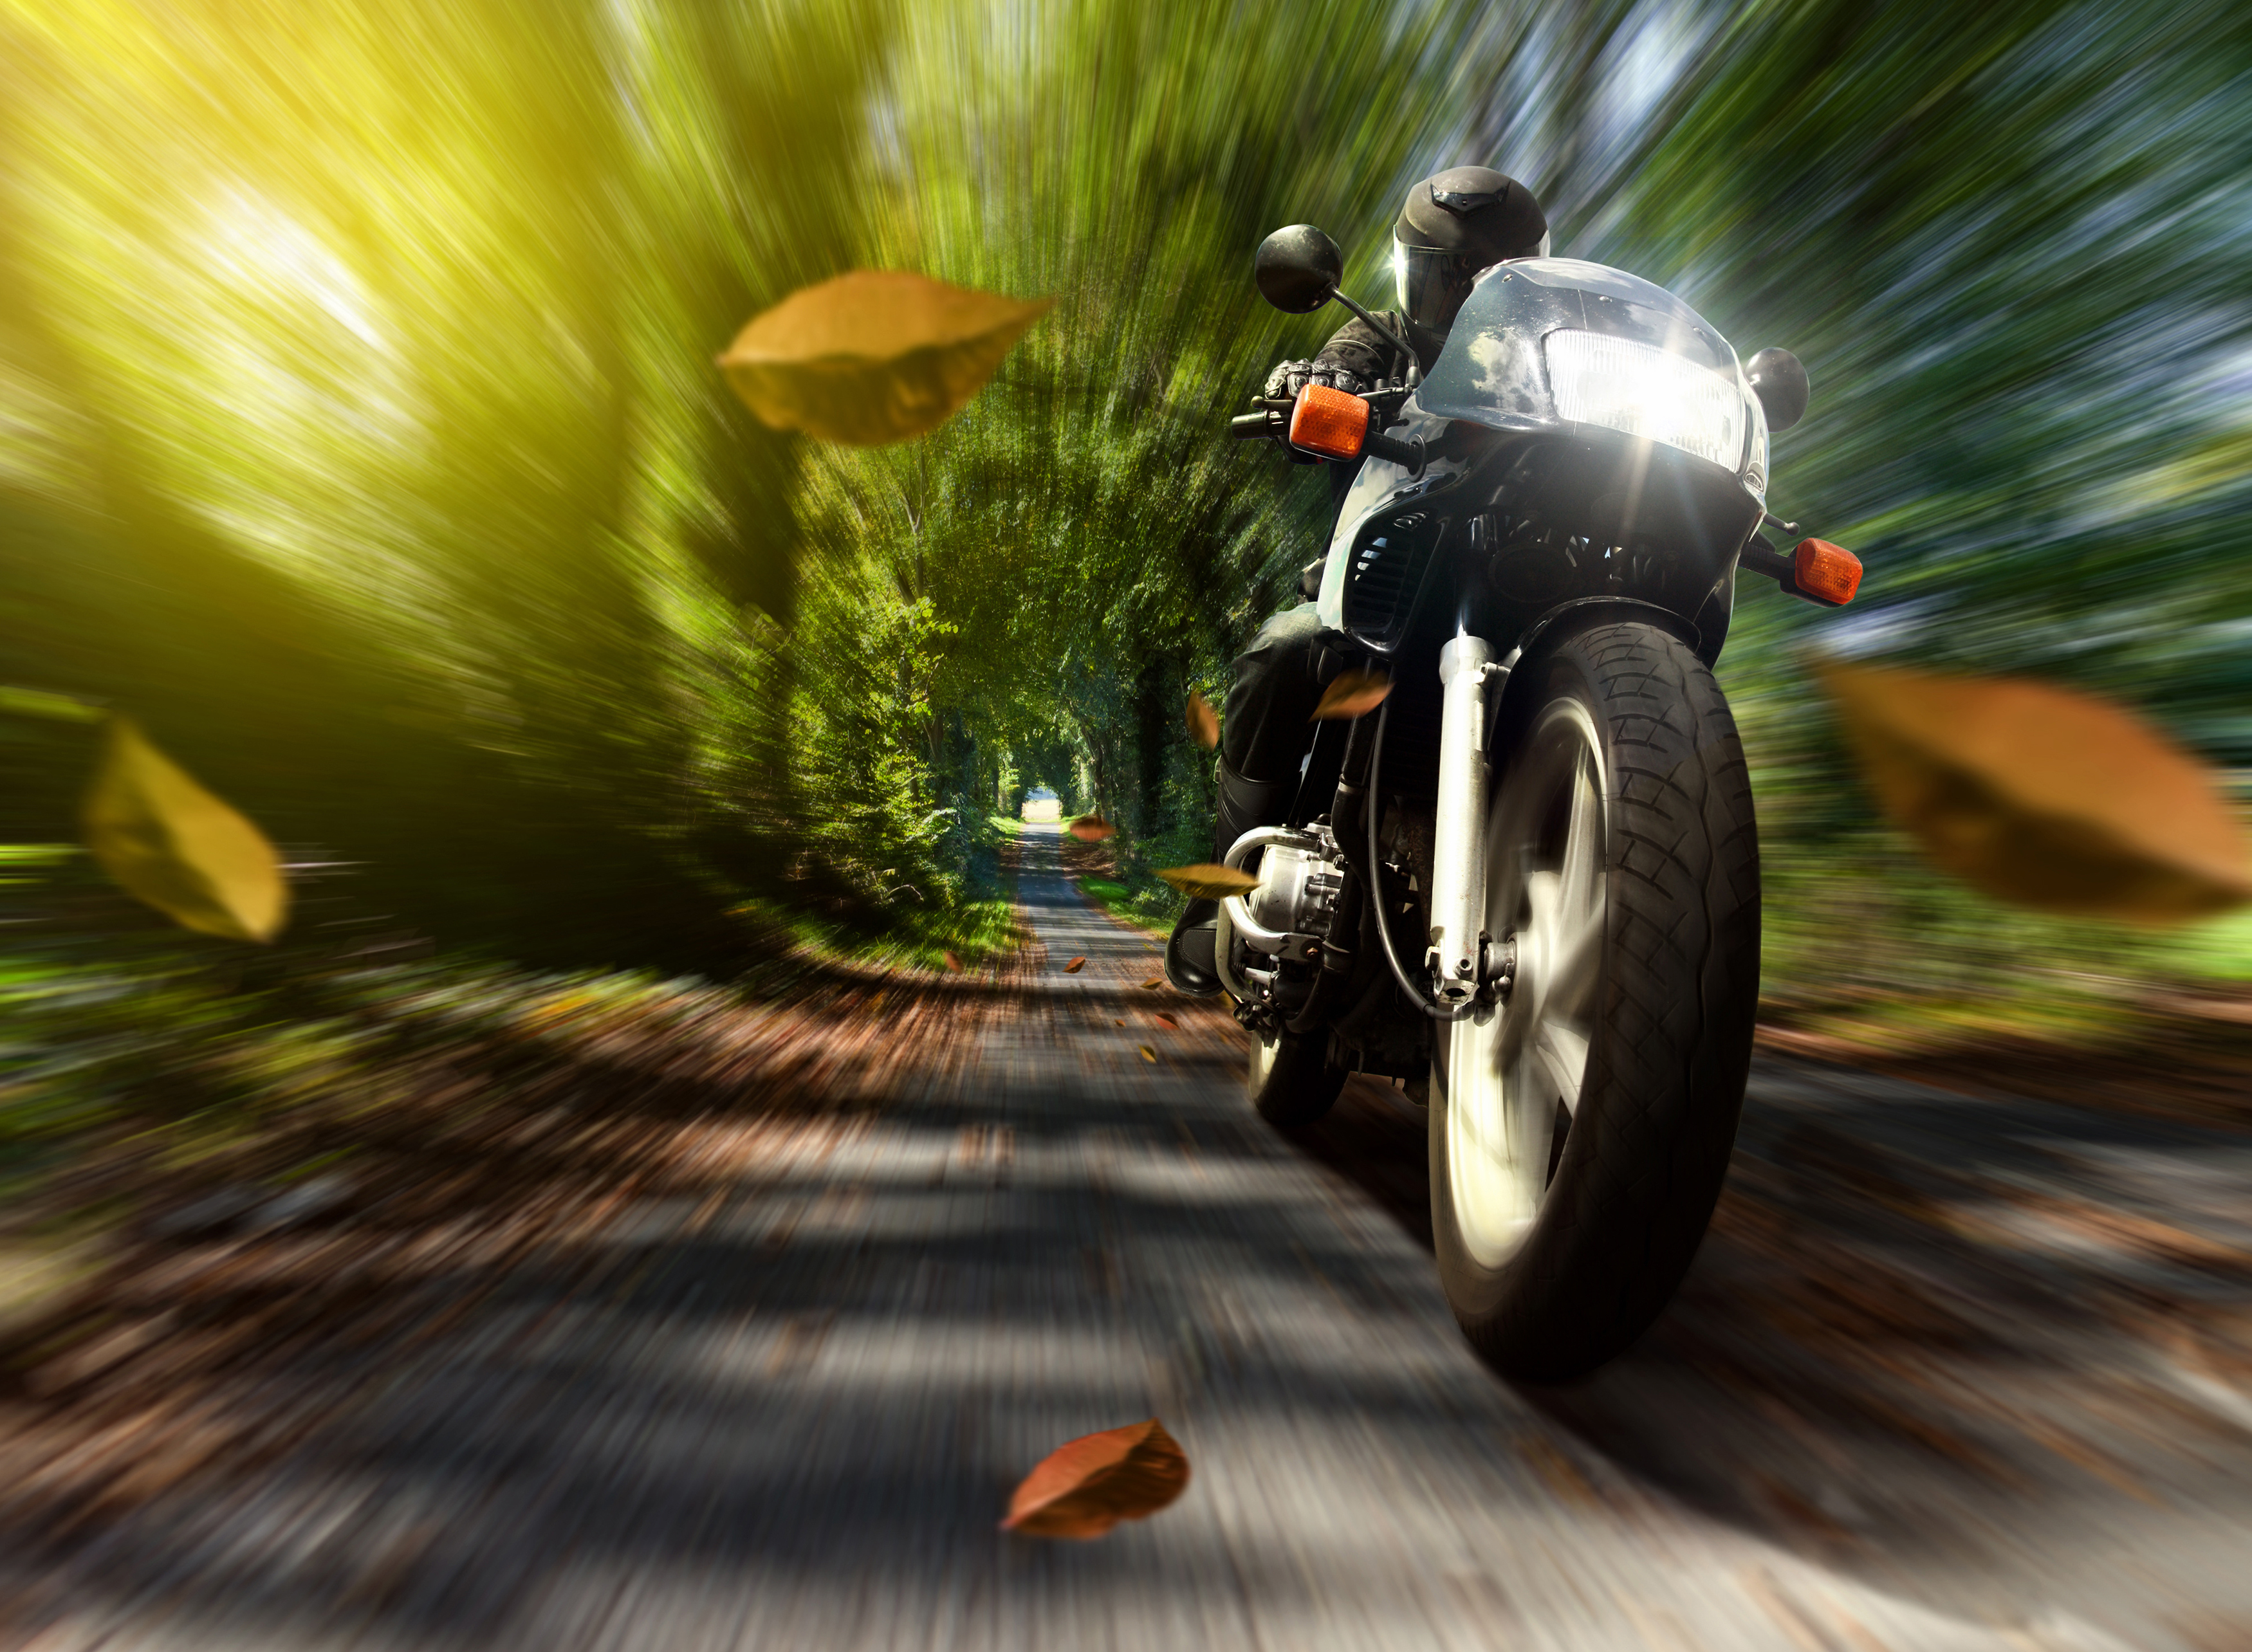 Image: Motorcycle, bike, racer, speed, foliage, trees, trail, headlight, light, blur